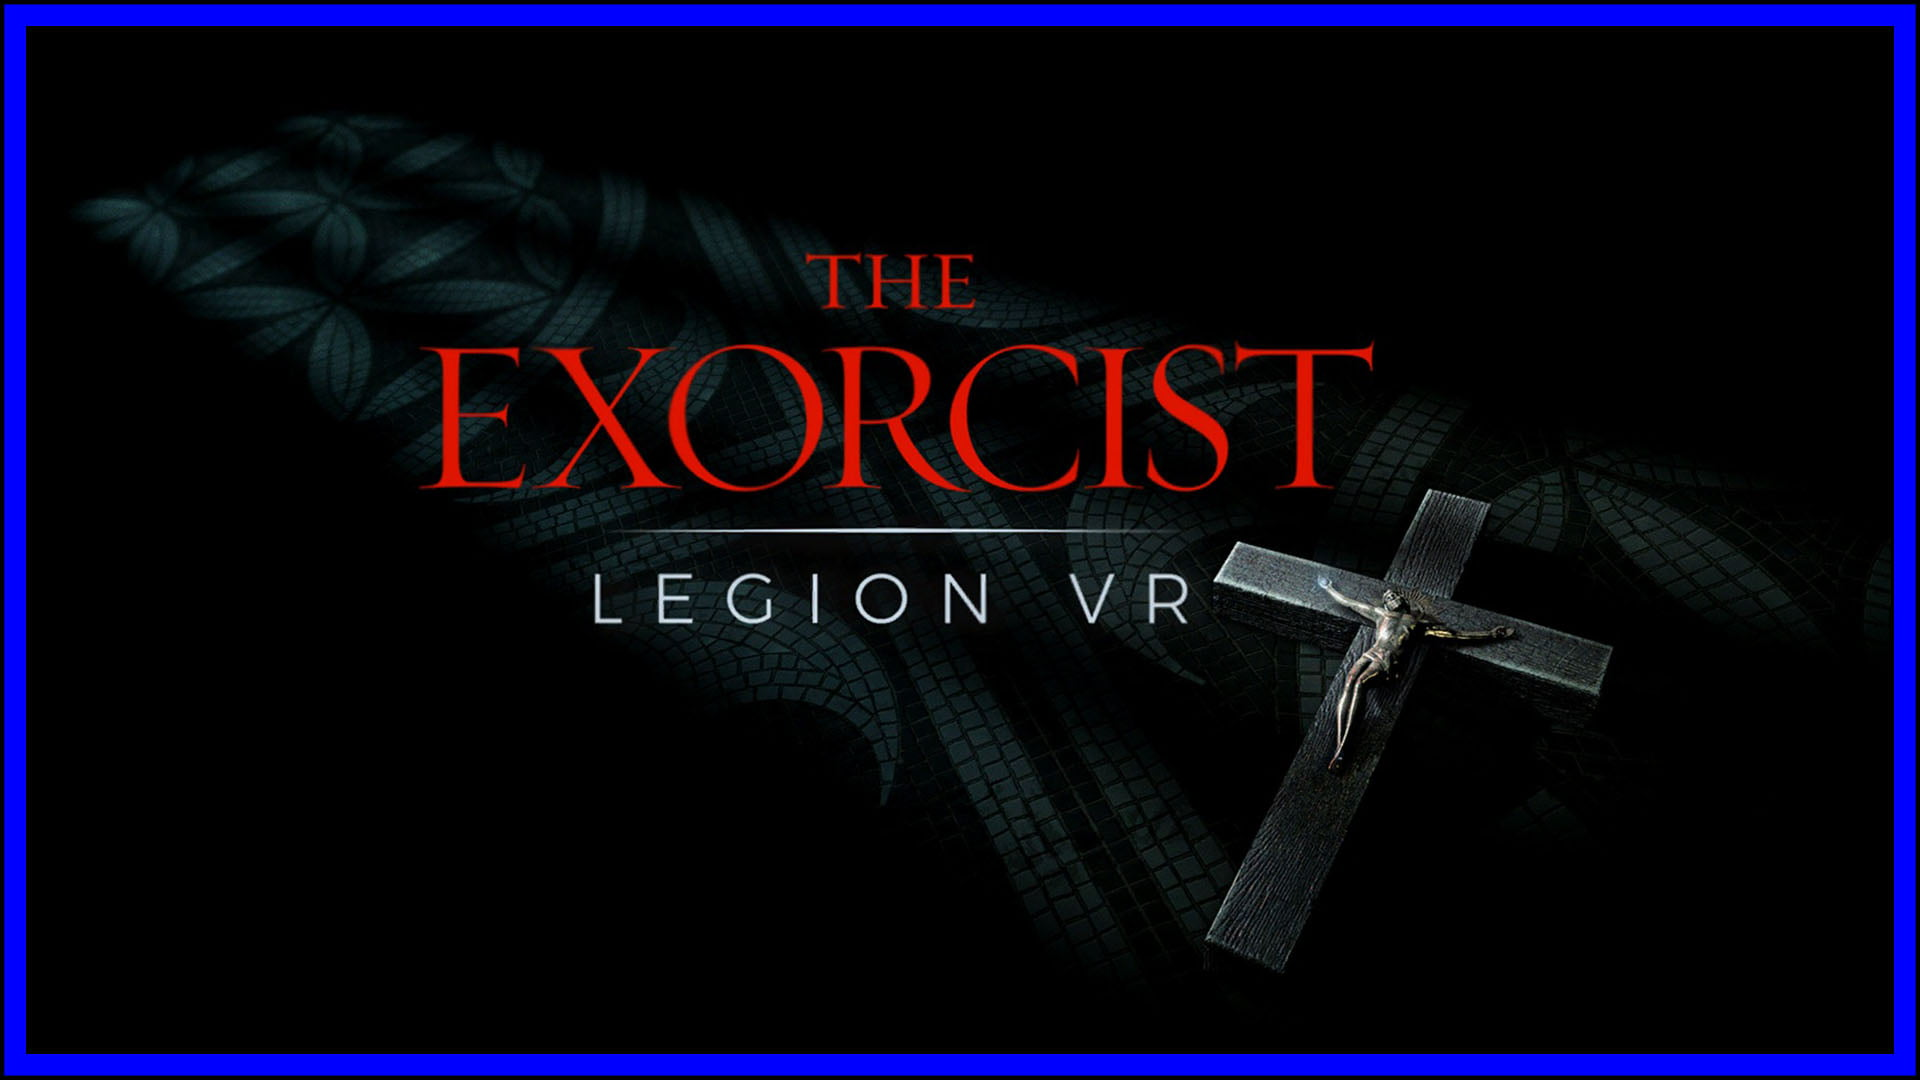 The Exorcist VR Fi3